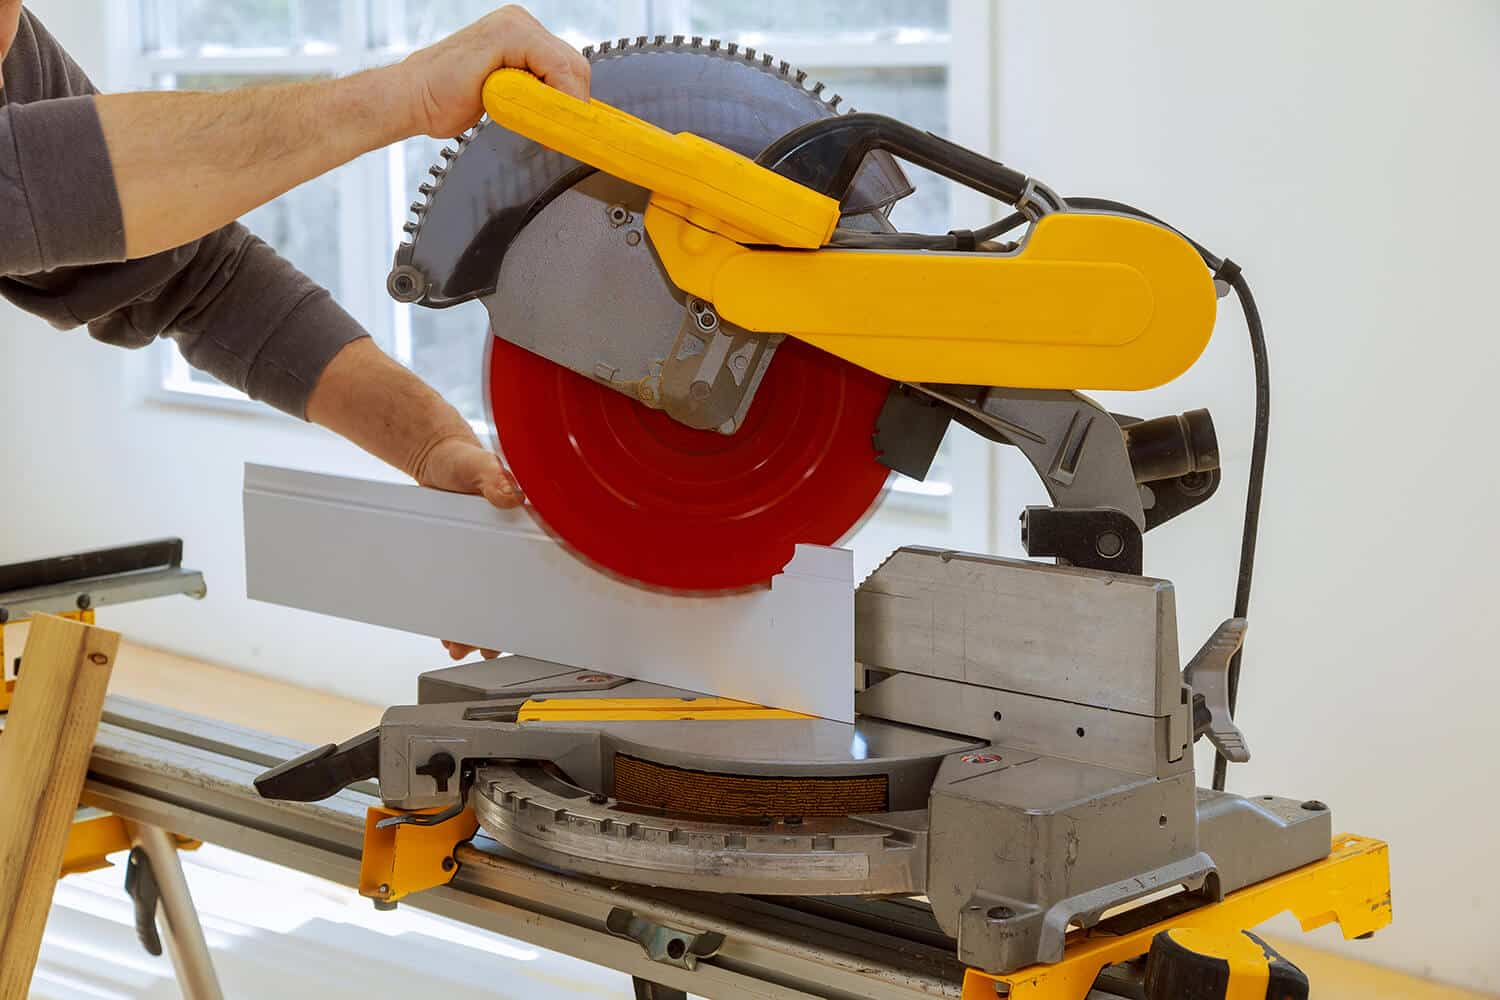 Safety Precautions With a Miter Saw